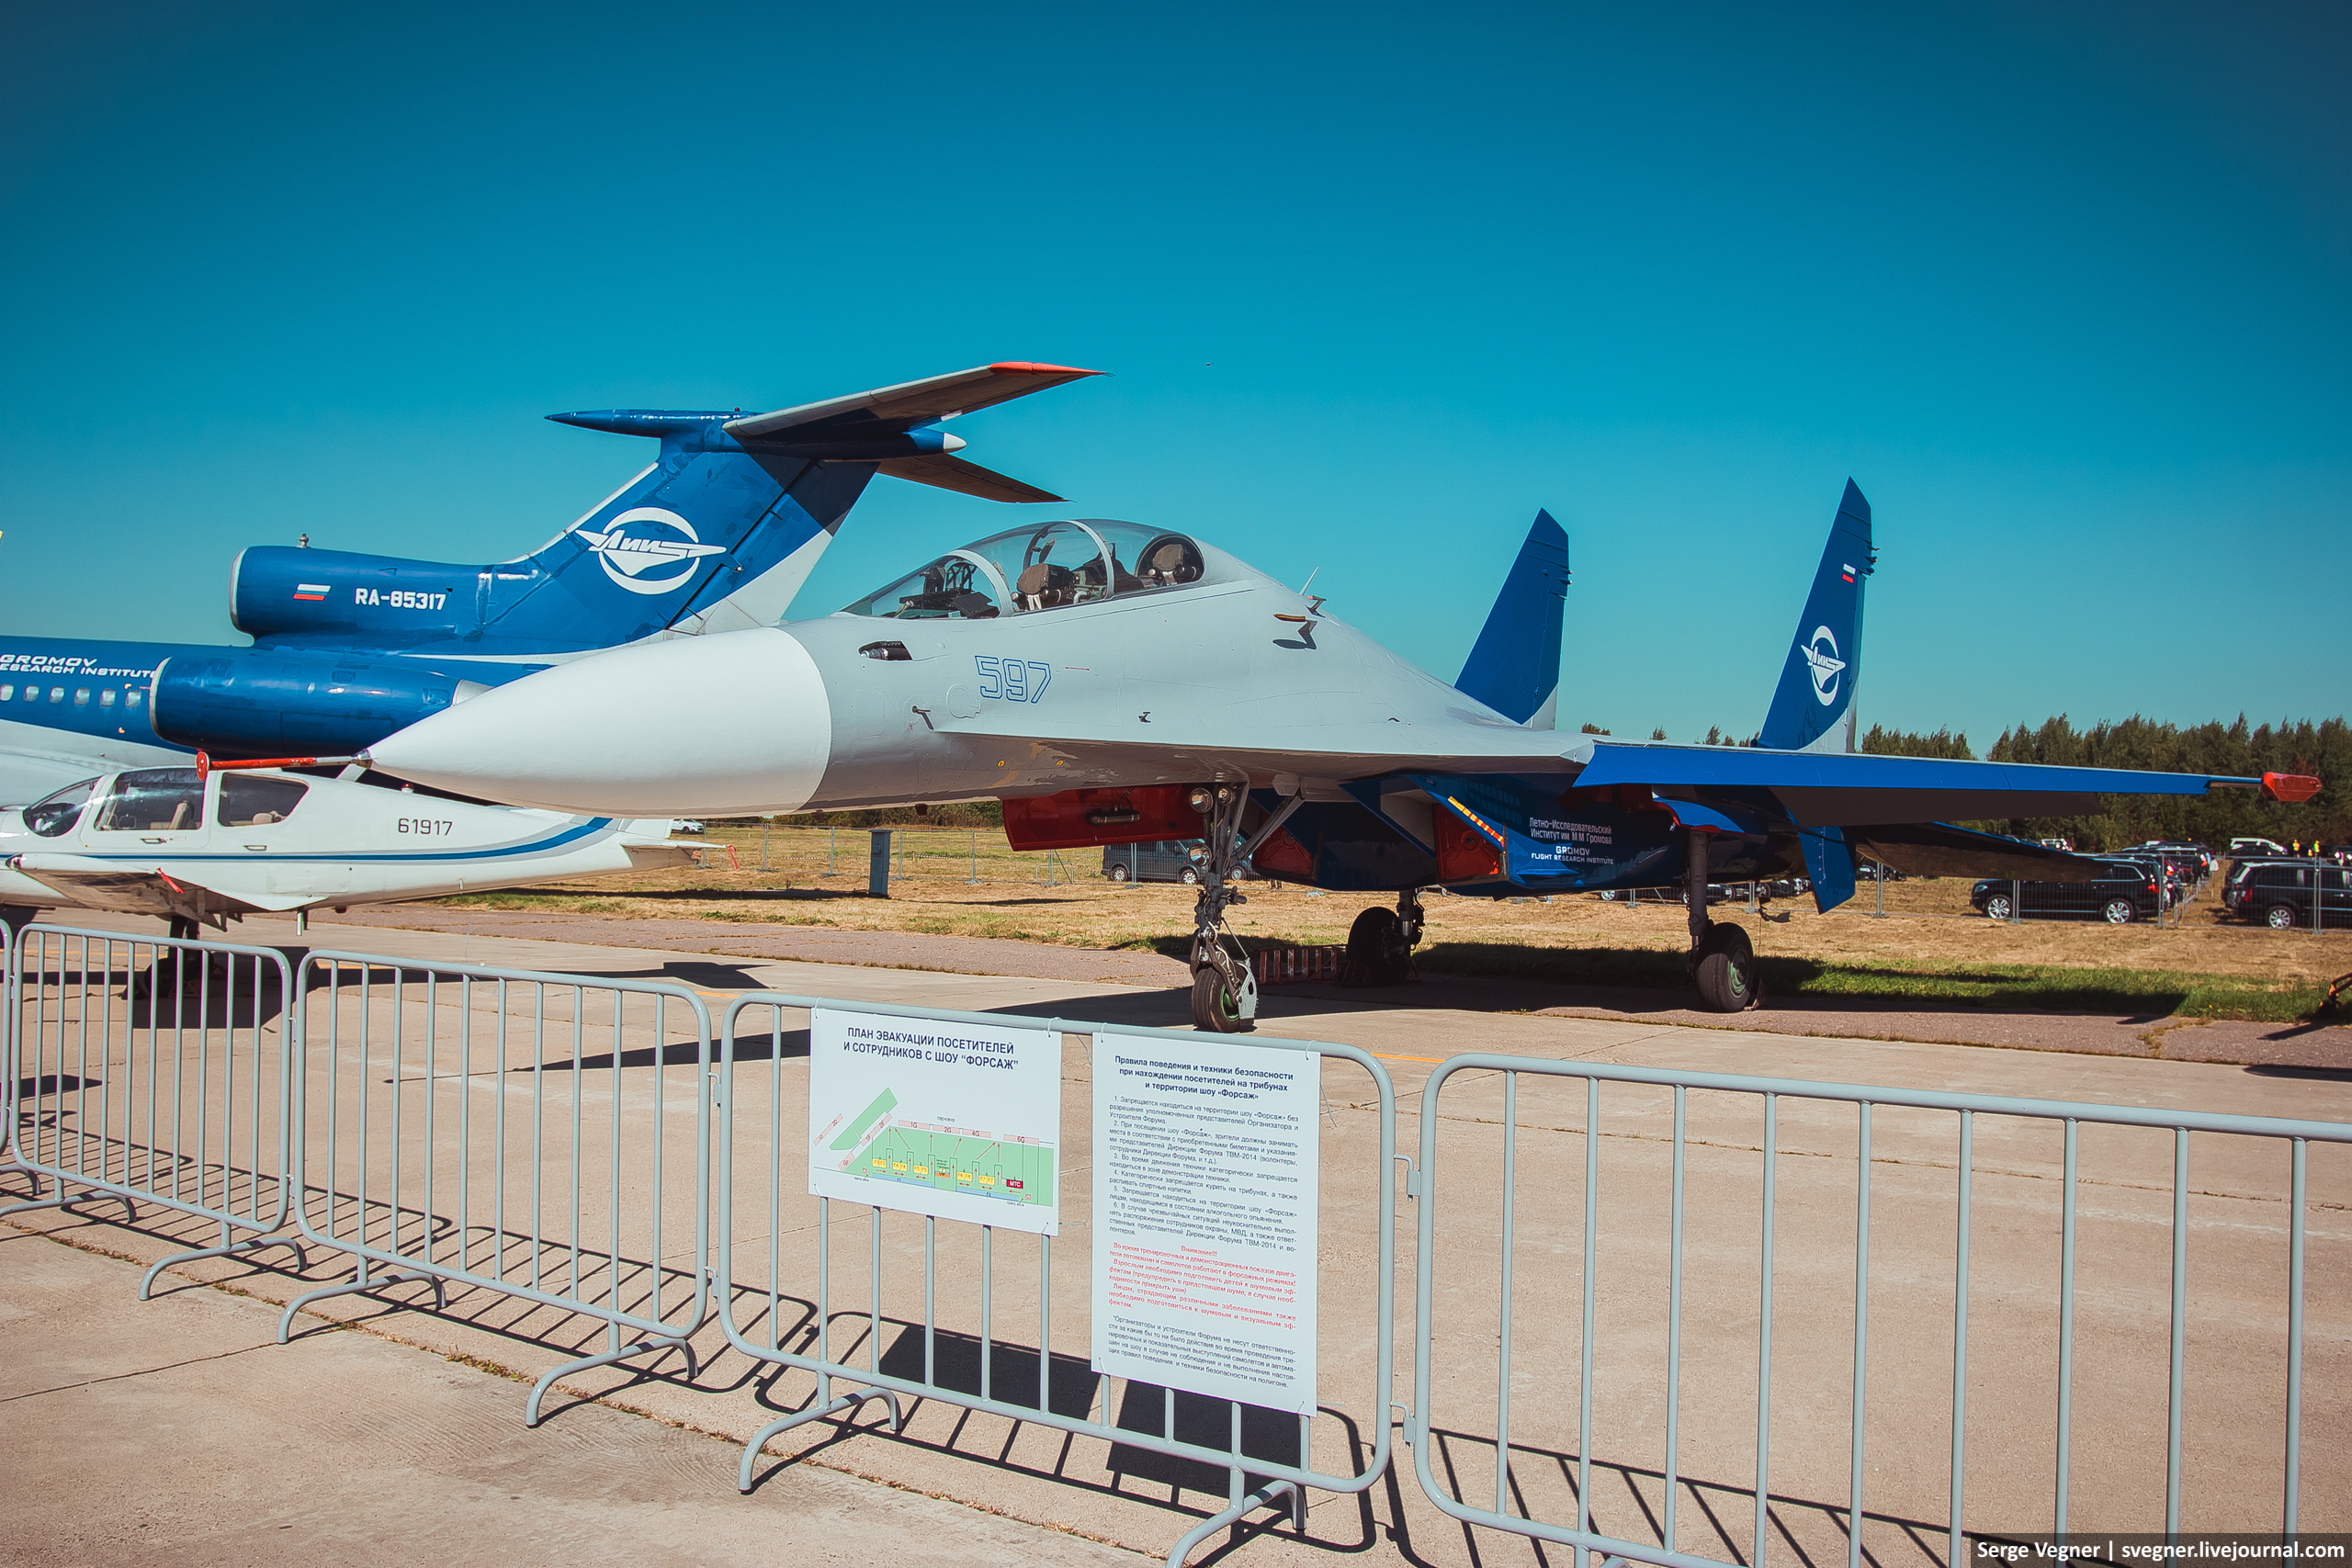 MAKS-2015 Air Show: Photos and Discussion - Page 3 0_f5acd_f59b8a79_orig